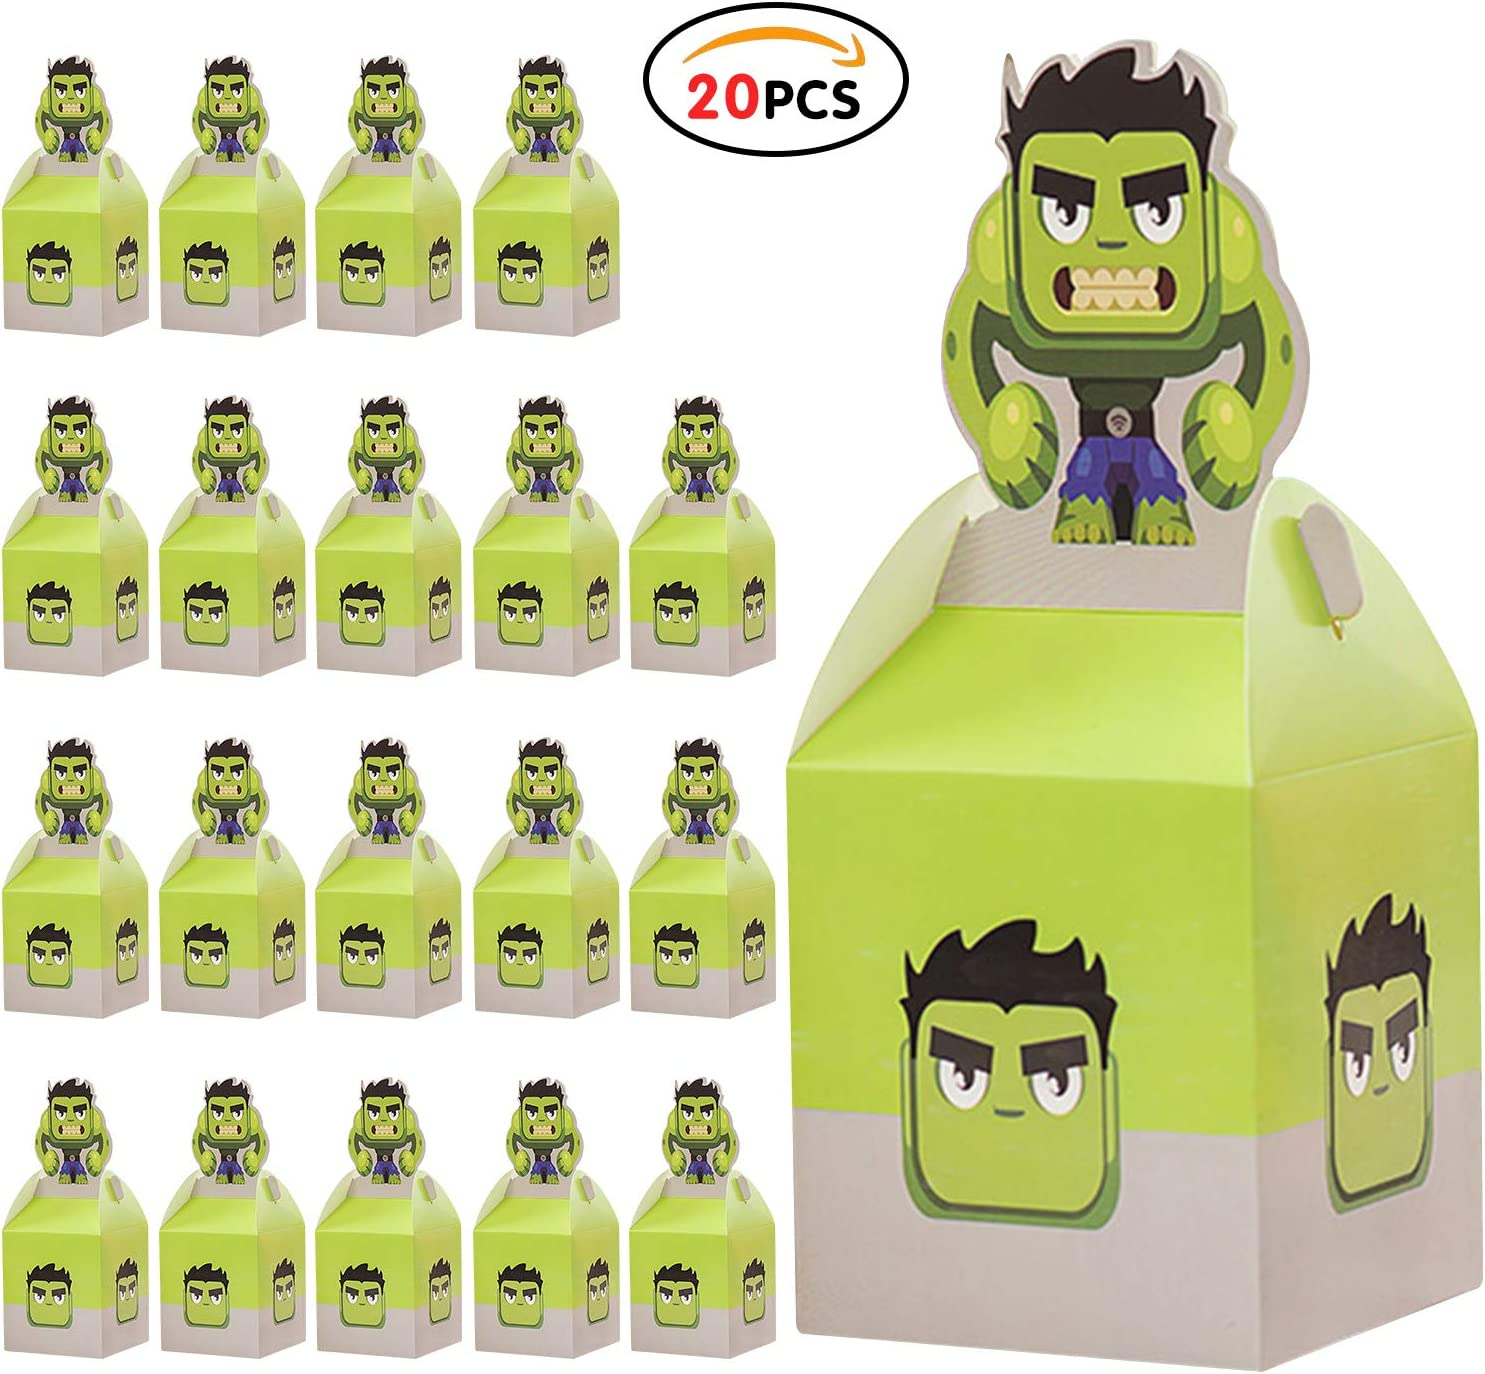 Reusable Kids Party Bags for Birthday Party Favors Give Aways Supplies Gift Lunch Box Treat Bags Goodie for Children Toddlers Wedding Festival H9.8*W3.4* L3.4 Qemsele Kids Party Boxes 20pcs H25cm*W8.5cm*L8.5cm , Hulk